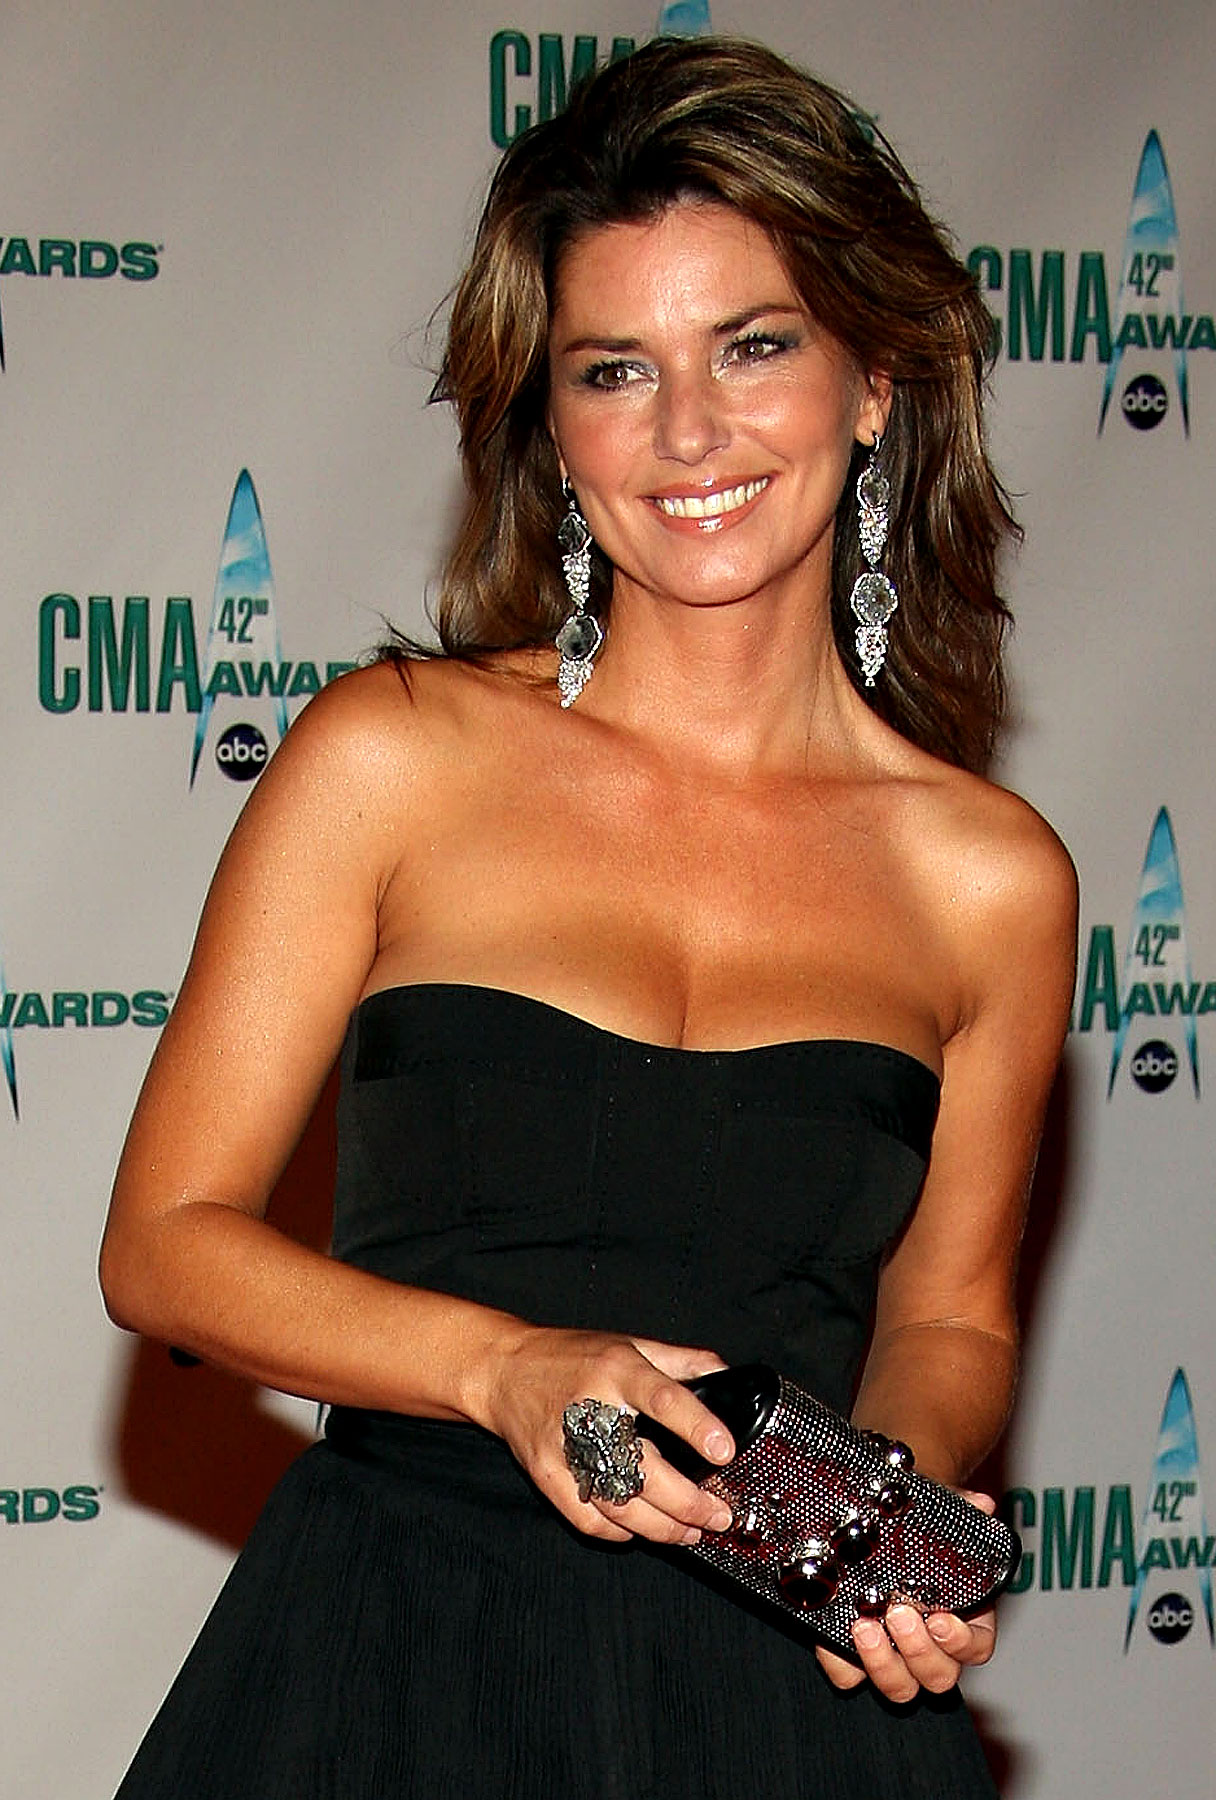 Shania Twain to Guest-Judge on American Idol?